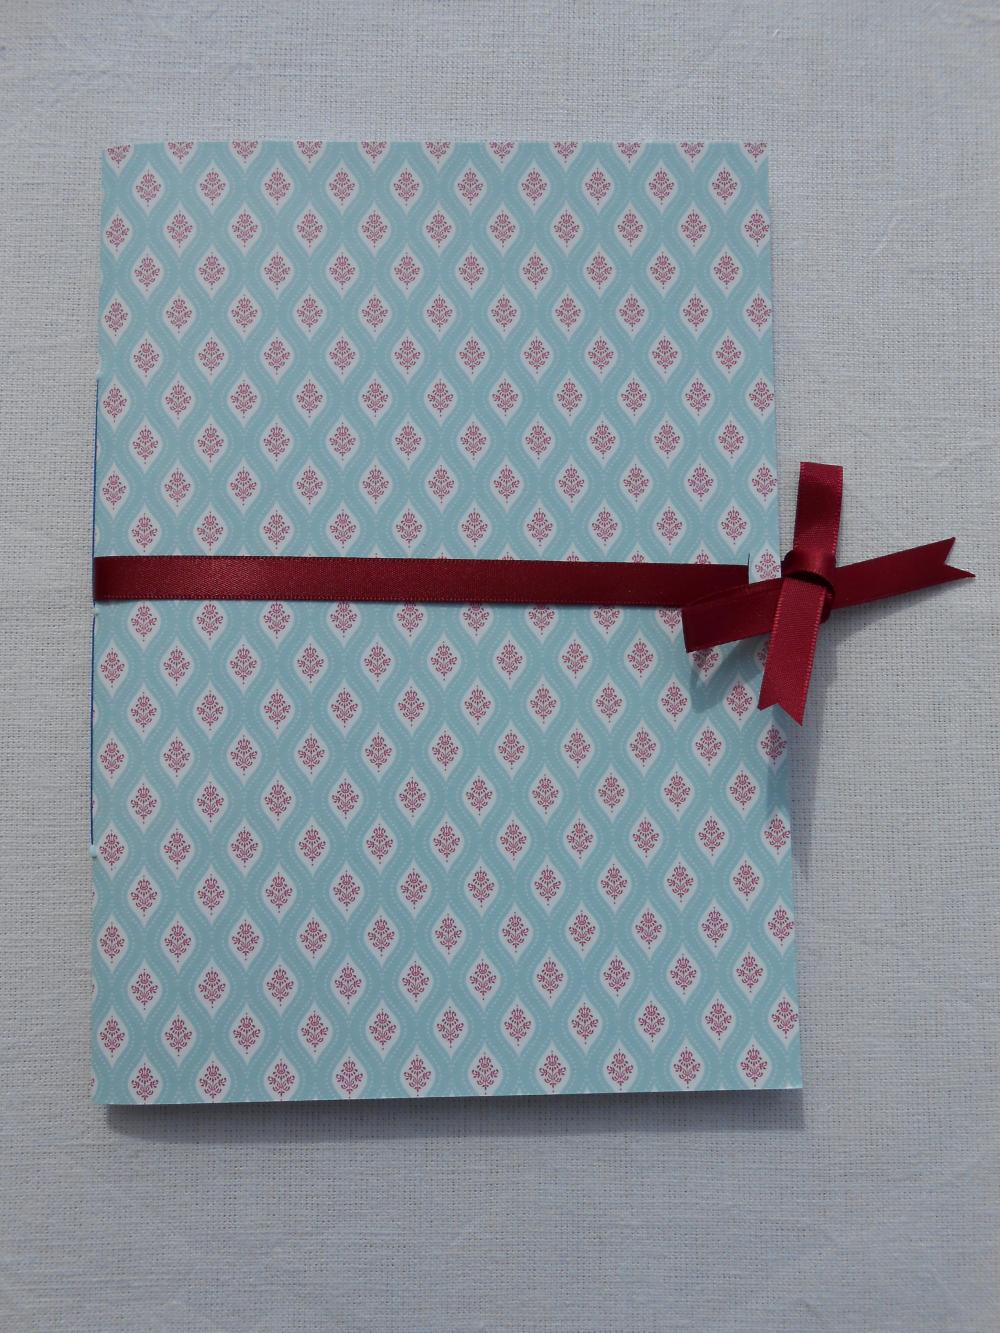 A5 Handstitched Notebook Regency Brighton Style in Duck Egg Blue and Red with Burgundy Ribbon